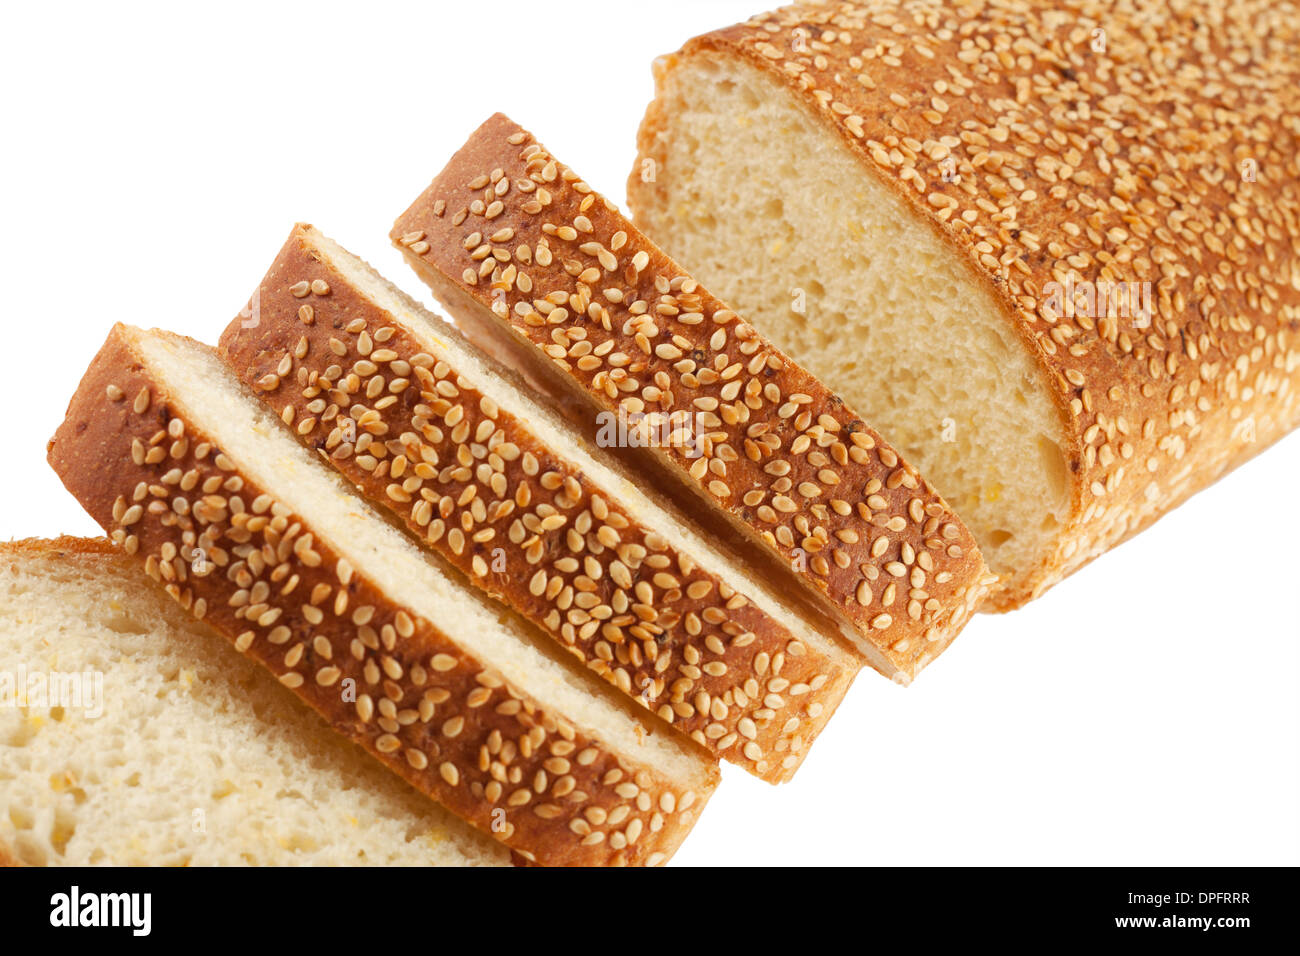 Slices of white bread with sesame seeds isolated on white background - Stock Image